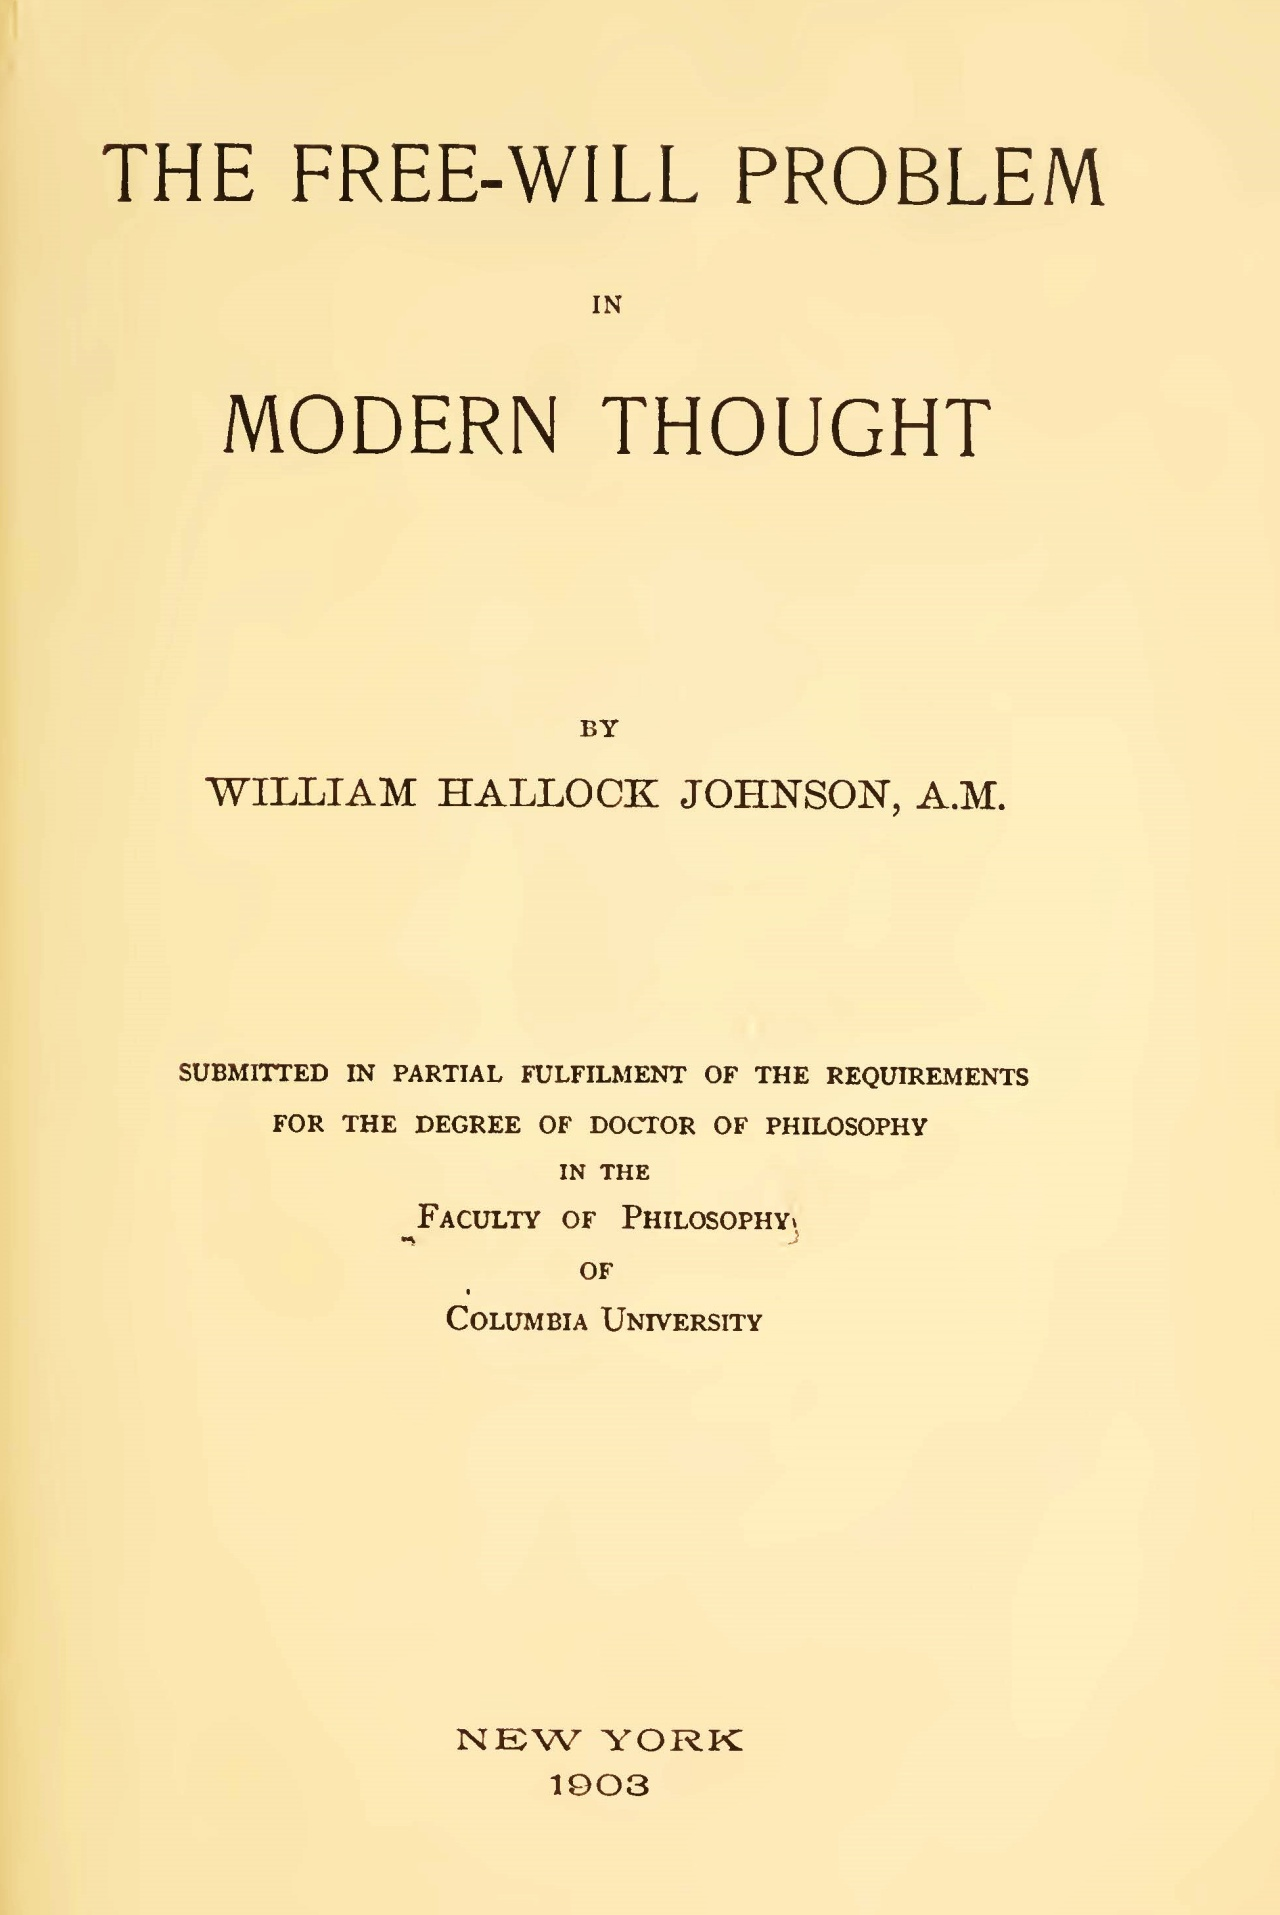 Johnson, William Hallock, The Free-Will Problem in Modern Thought Title Page.jpg